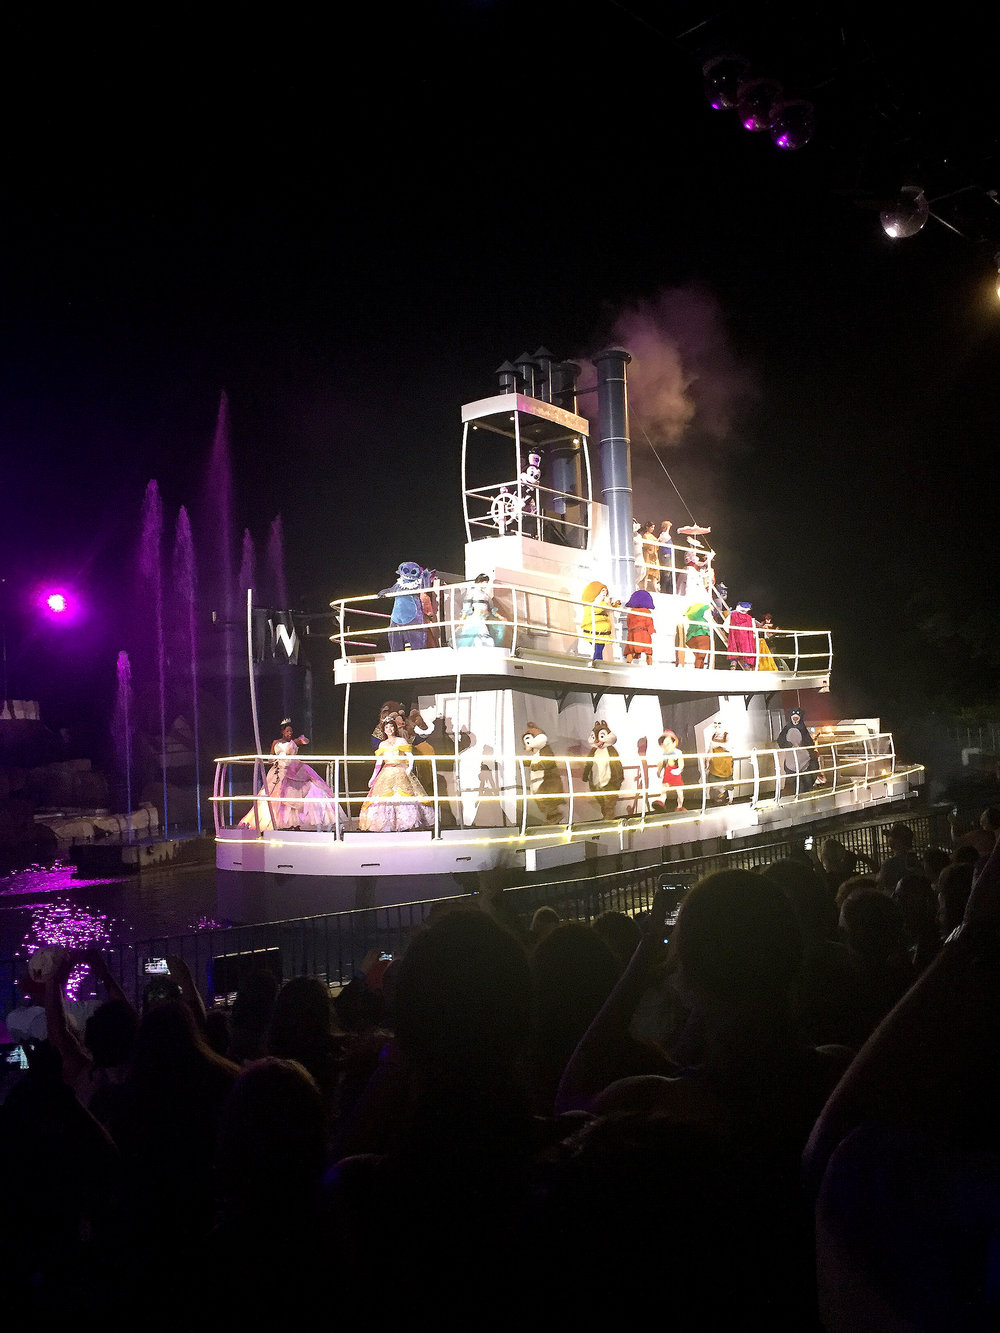 As much as I love Fantasmic and Beauty and the Beast, I don't think a Fastpass is worth it for these. You can see from this photo of the Fantasmic river boat  that we were super close to the water, even without using a Fastpass.